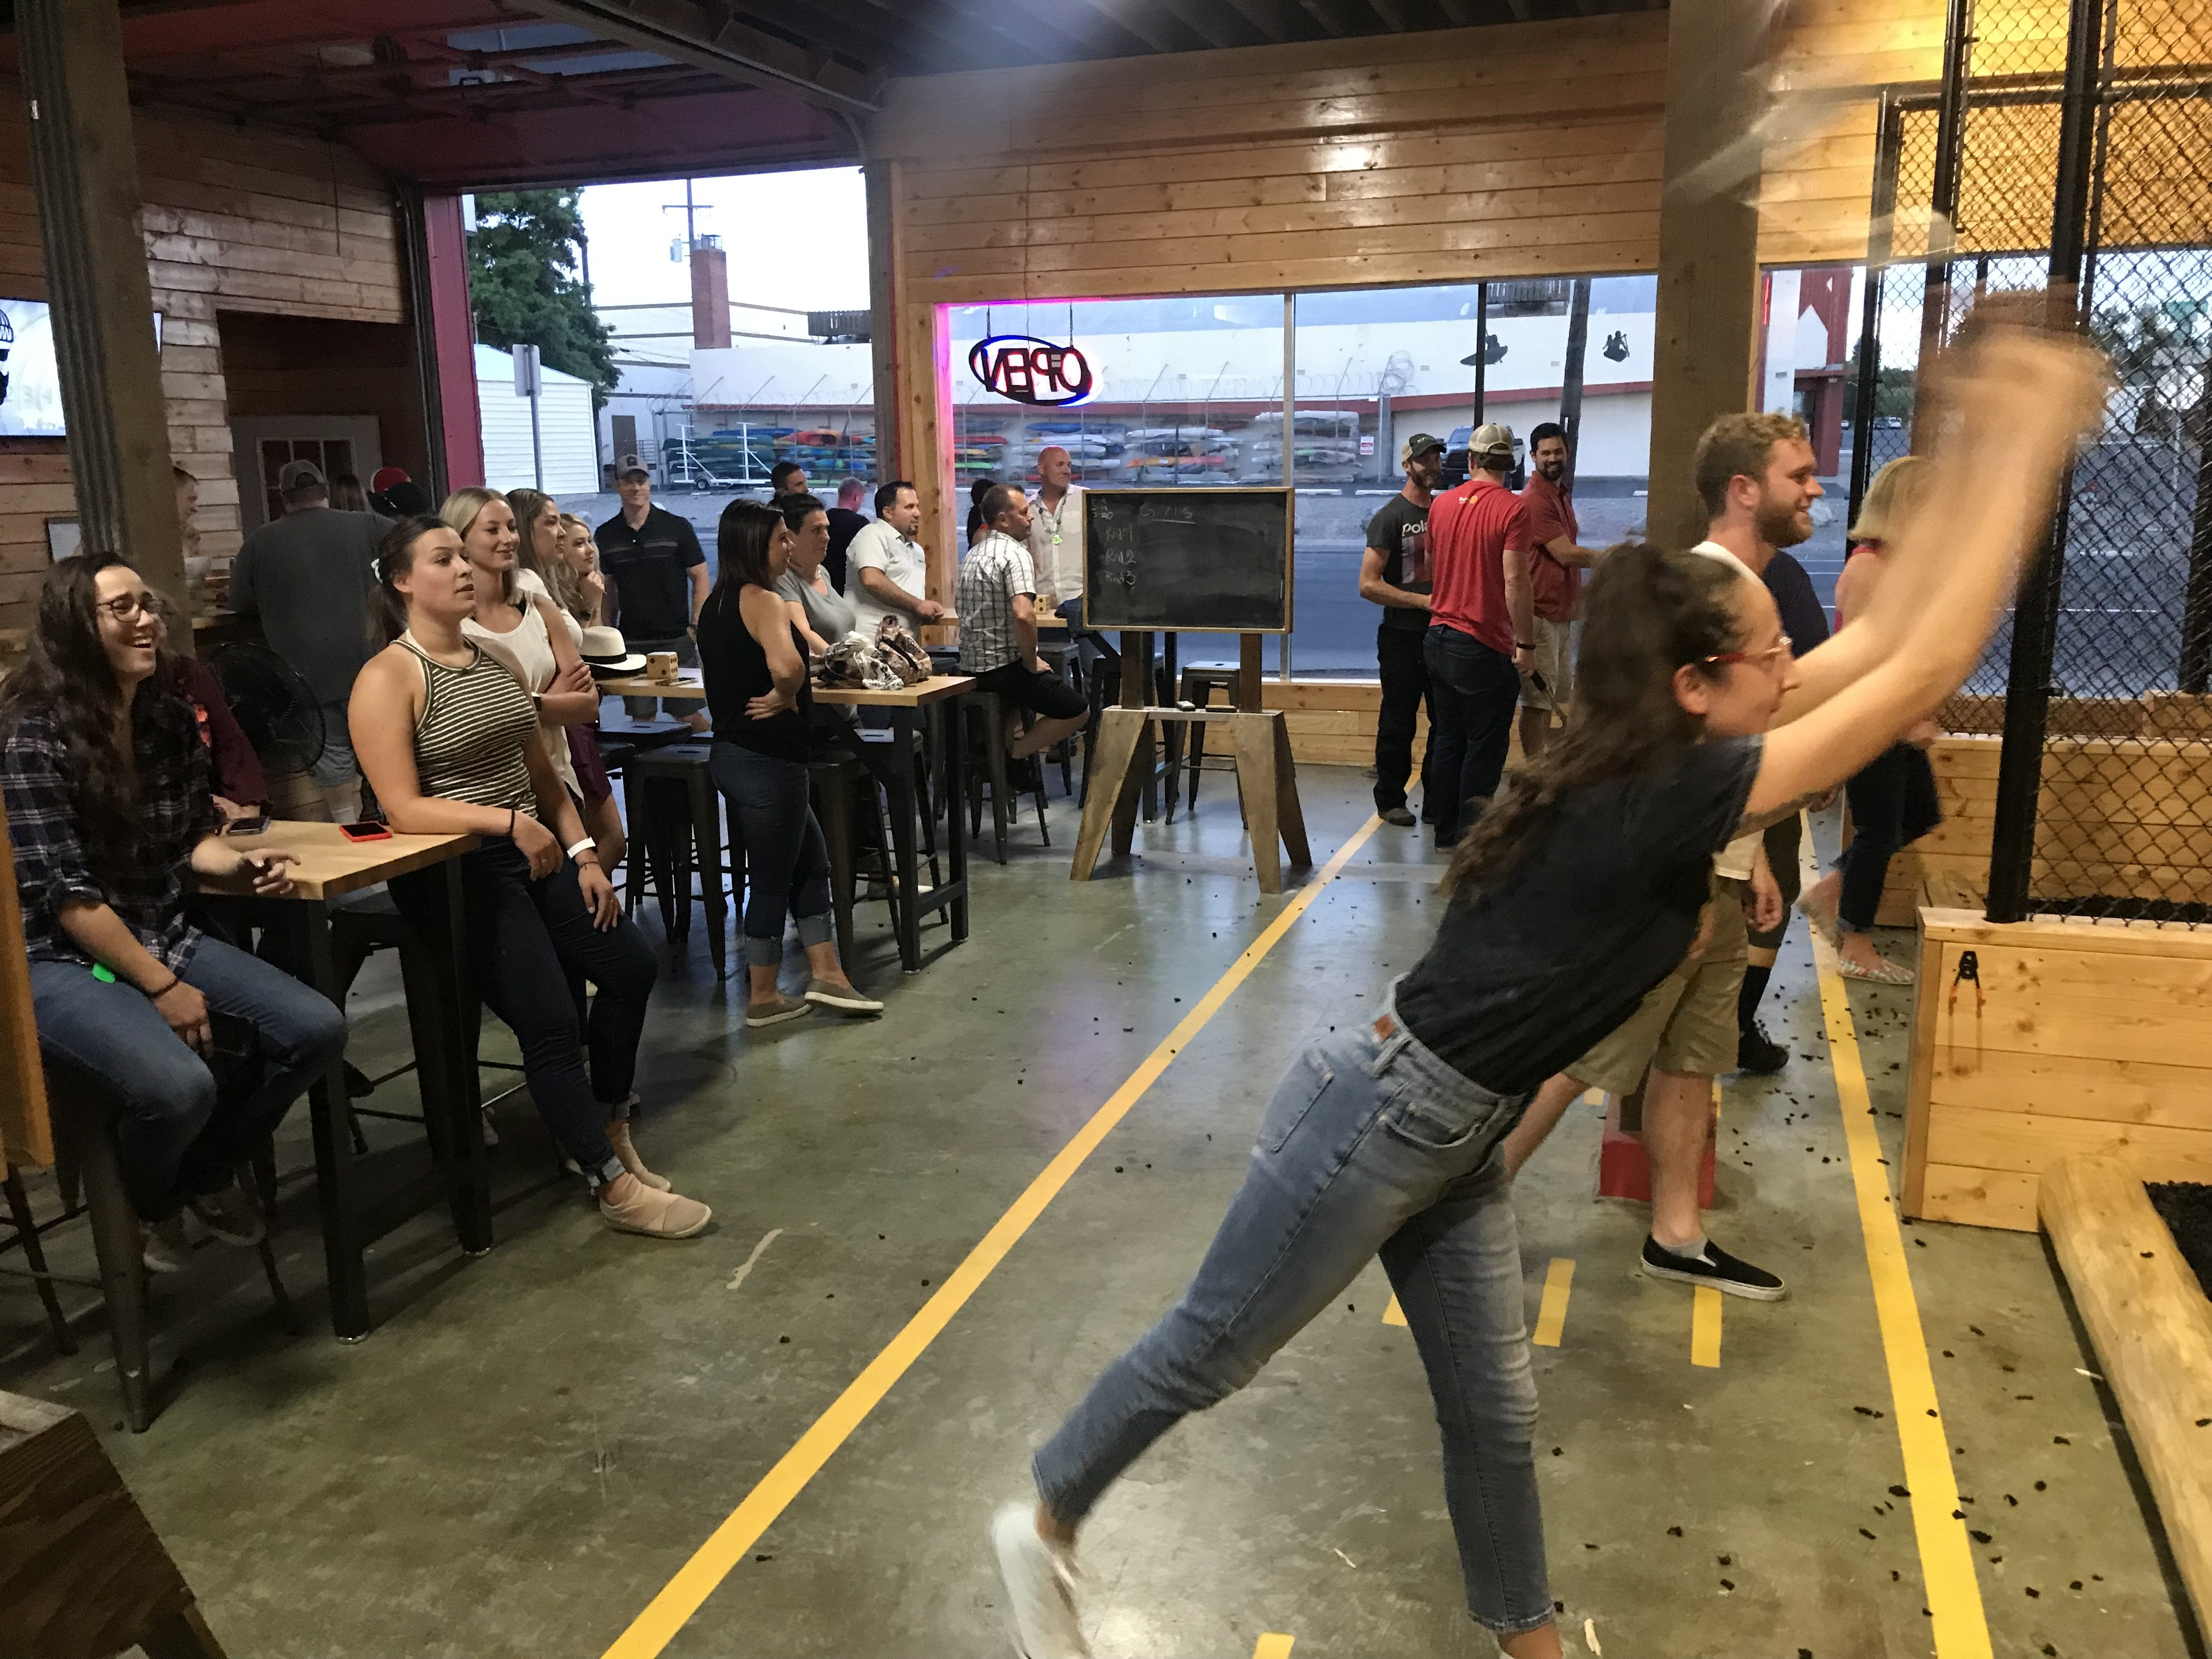 a large group enjoys axe throwing games at Heber Hatchets in Spokane